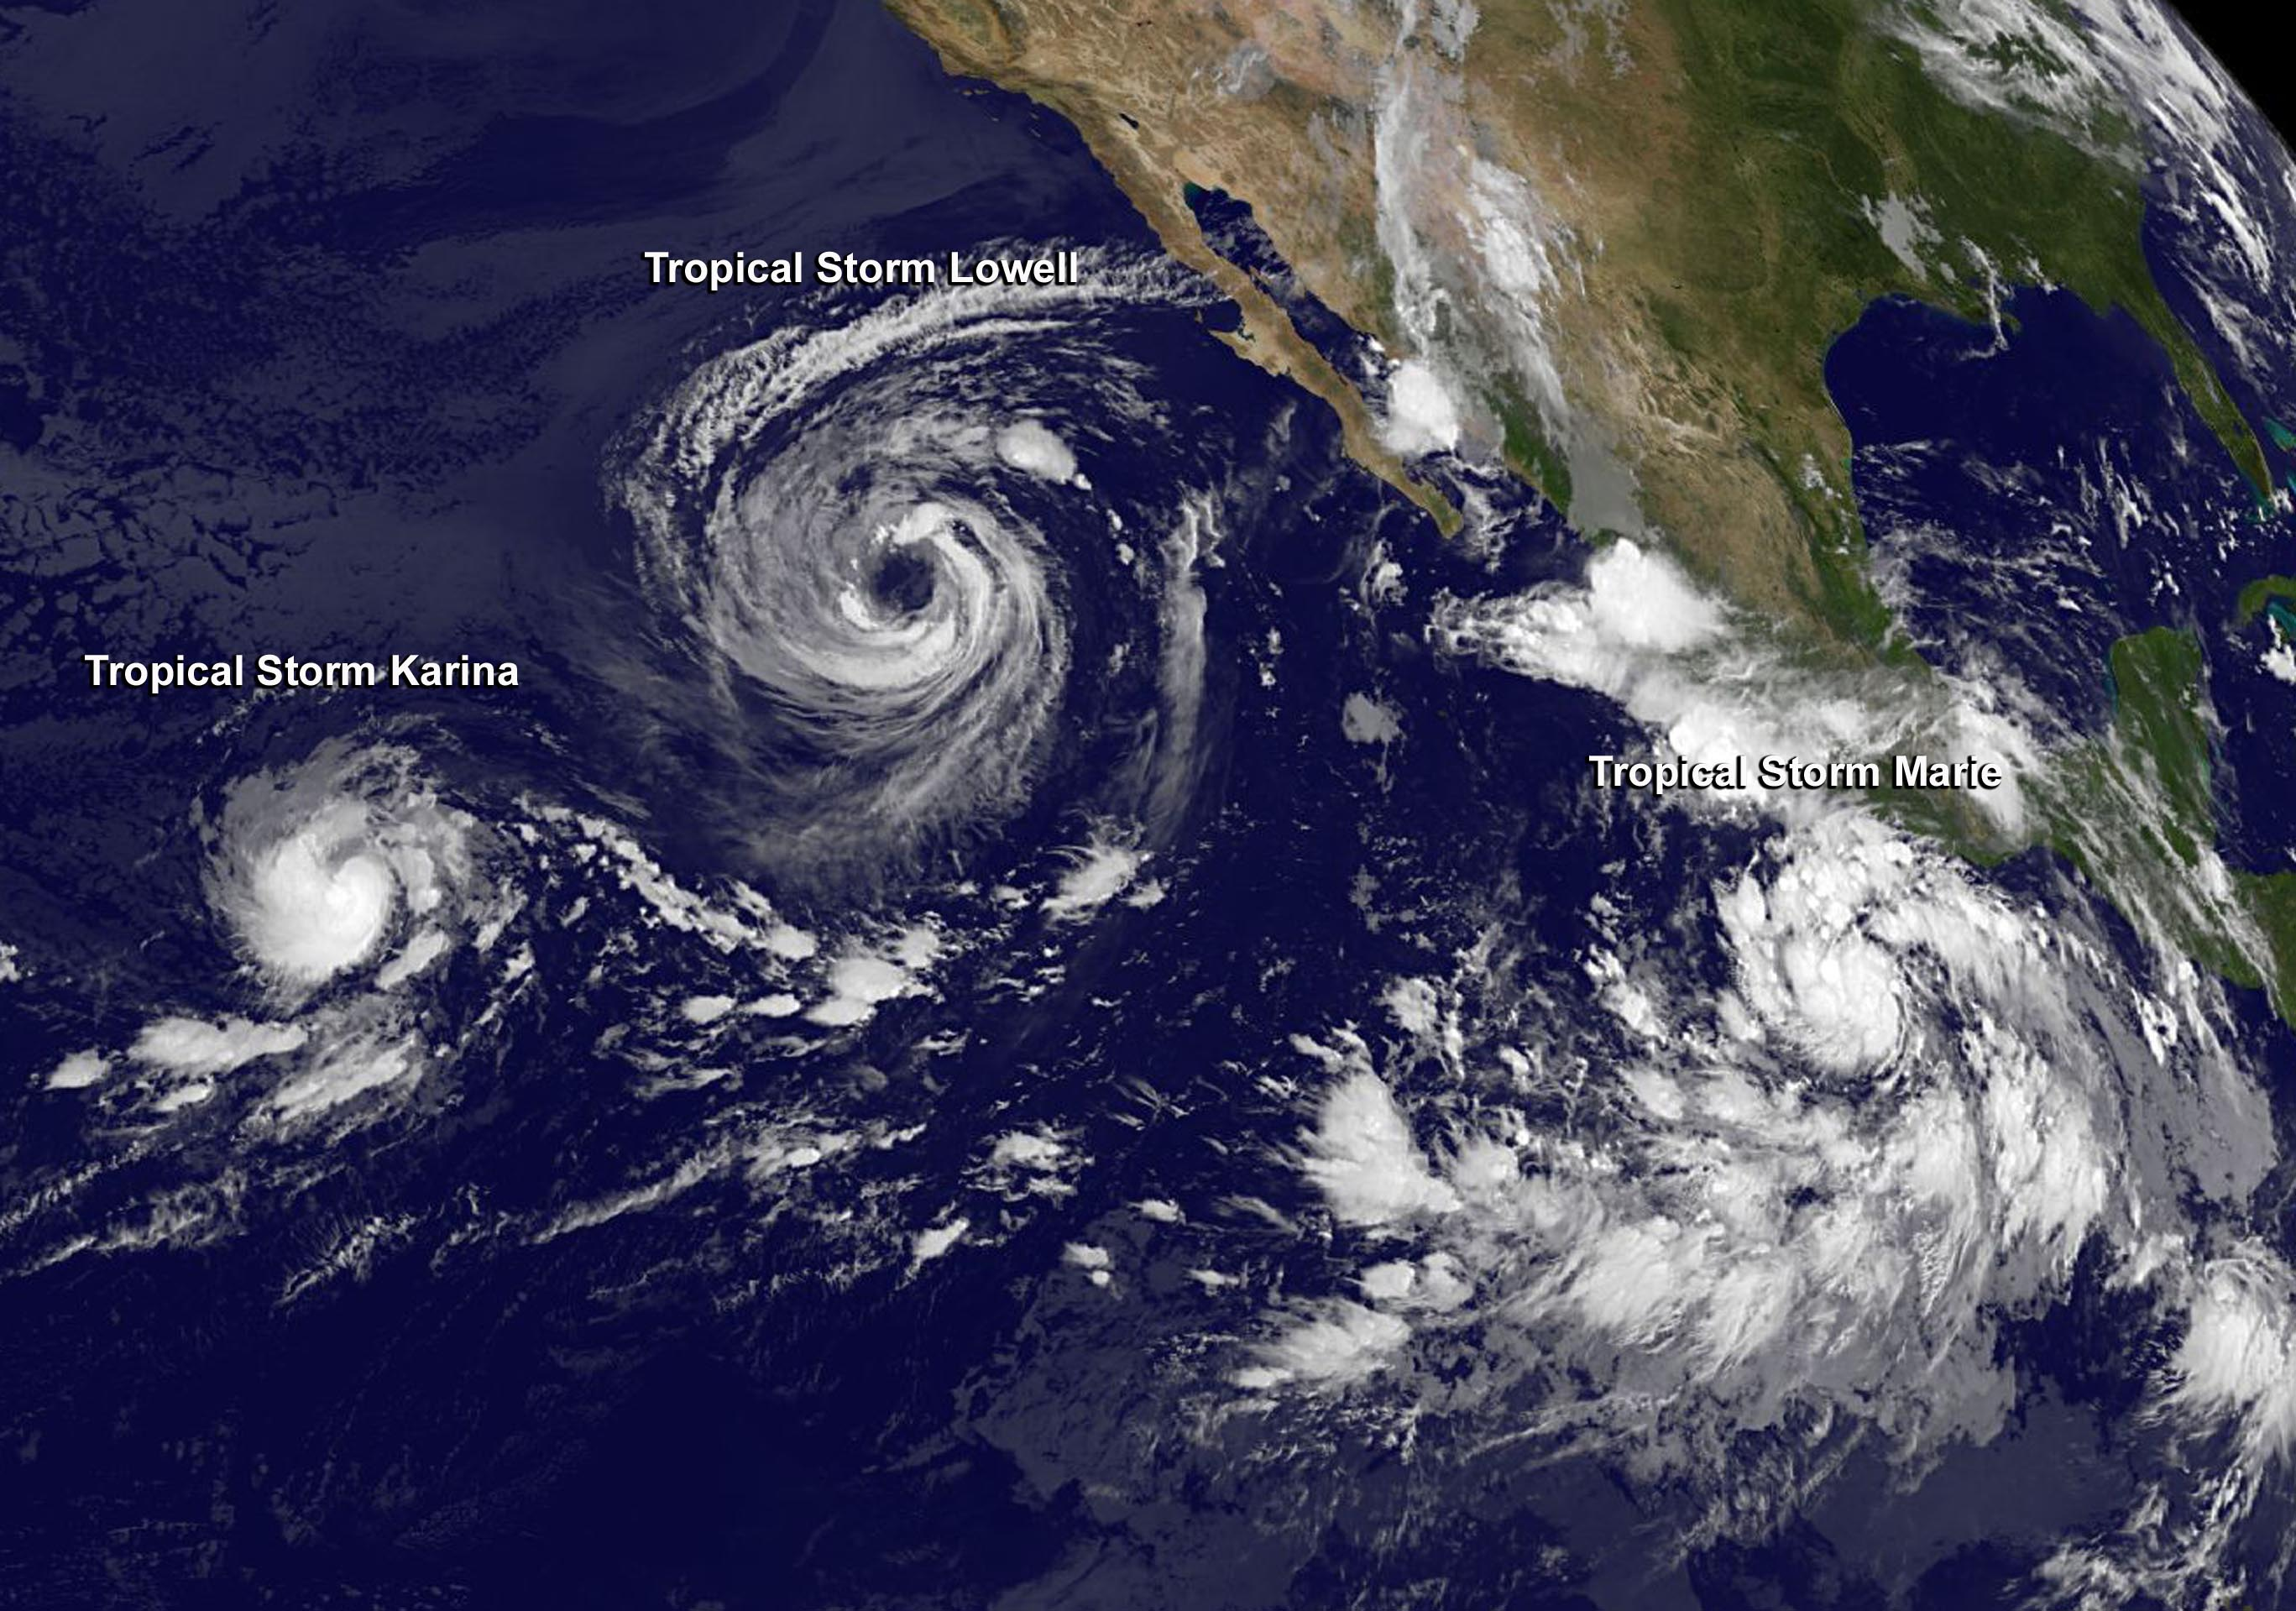 Storm Karina (left), Tropical Storm Lowell (center) and Tropical Storm ...